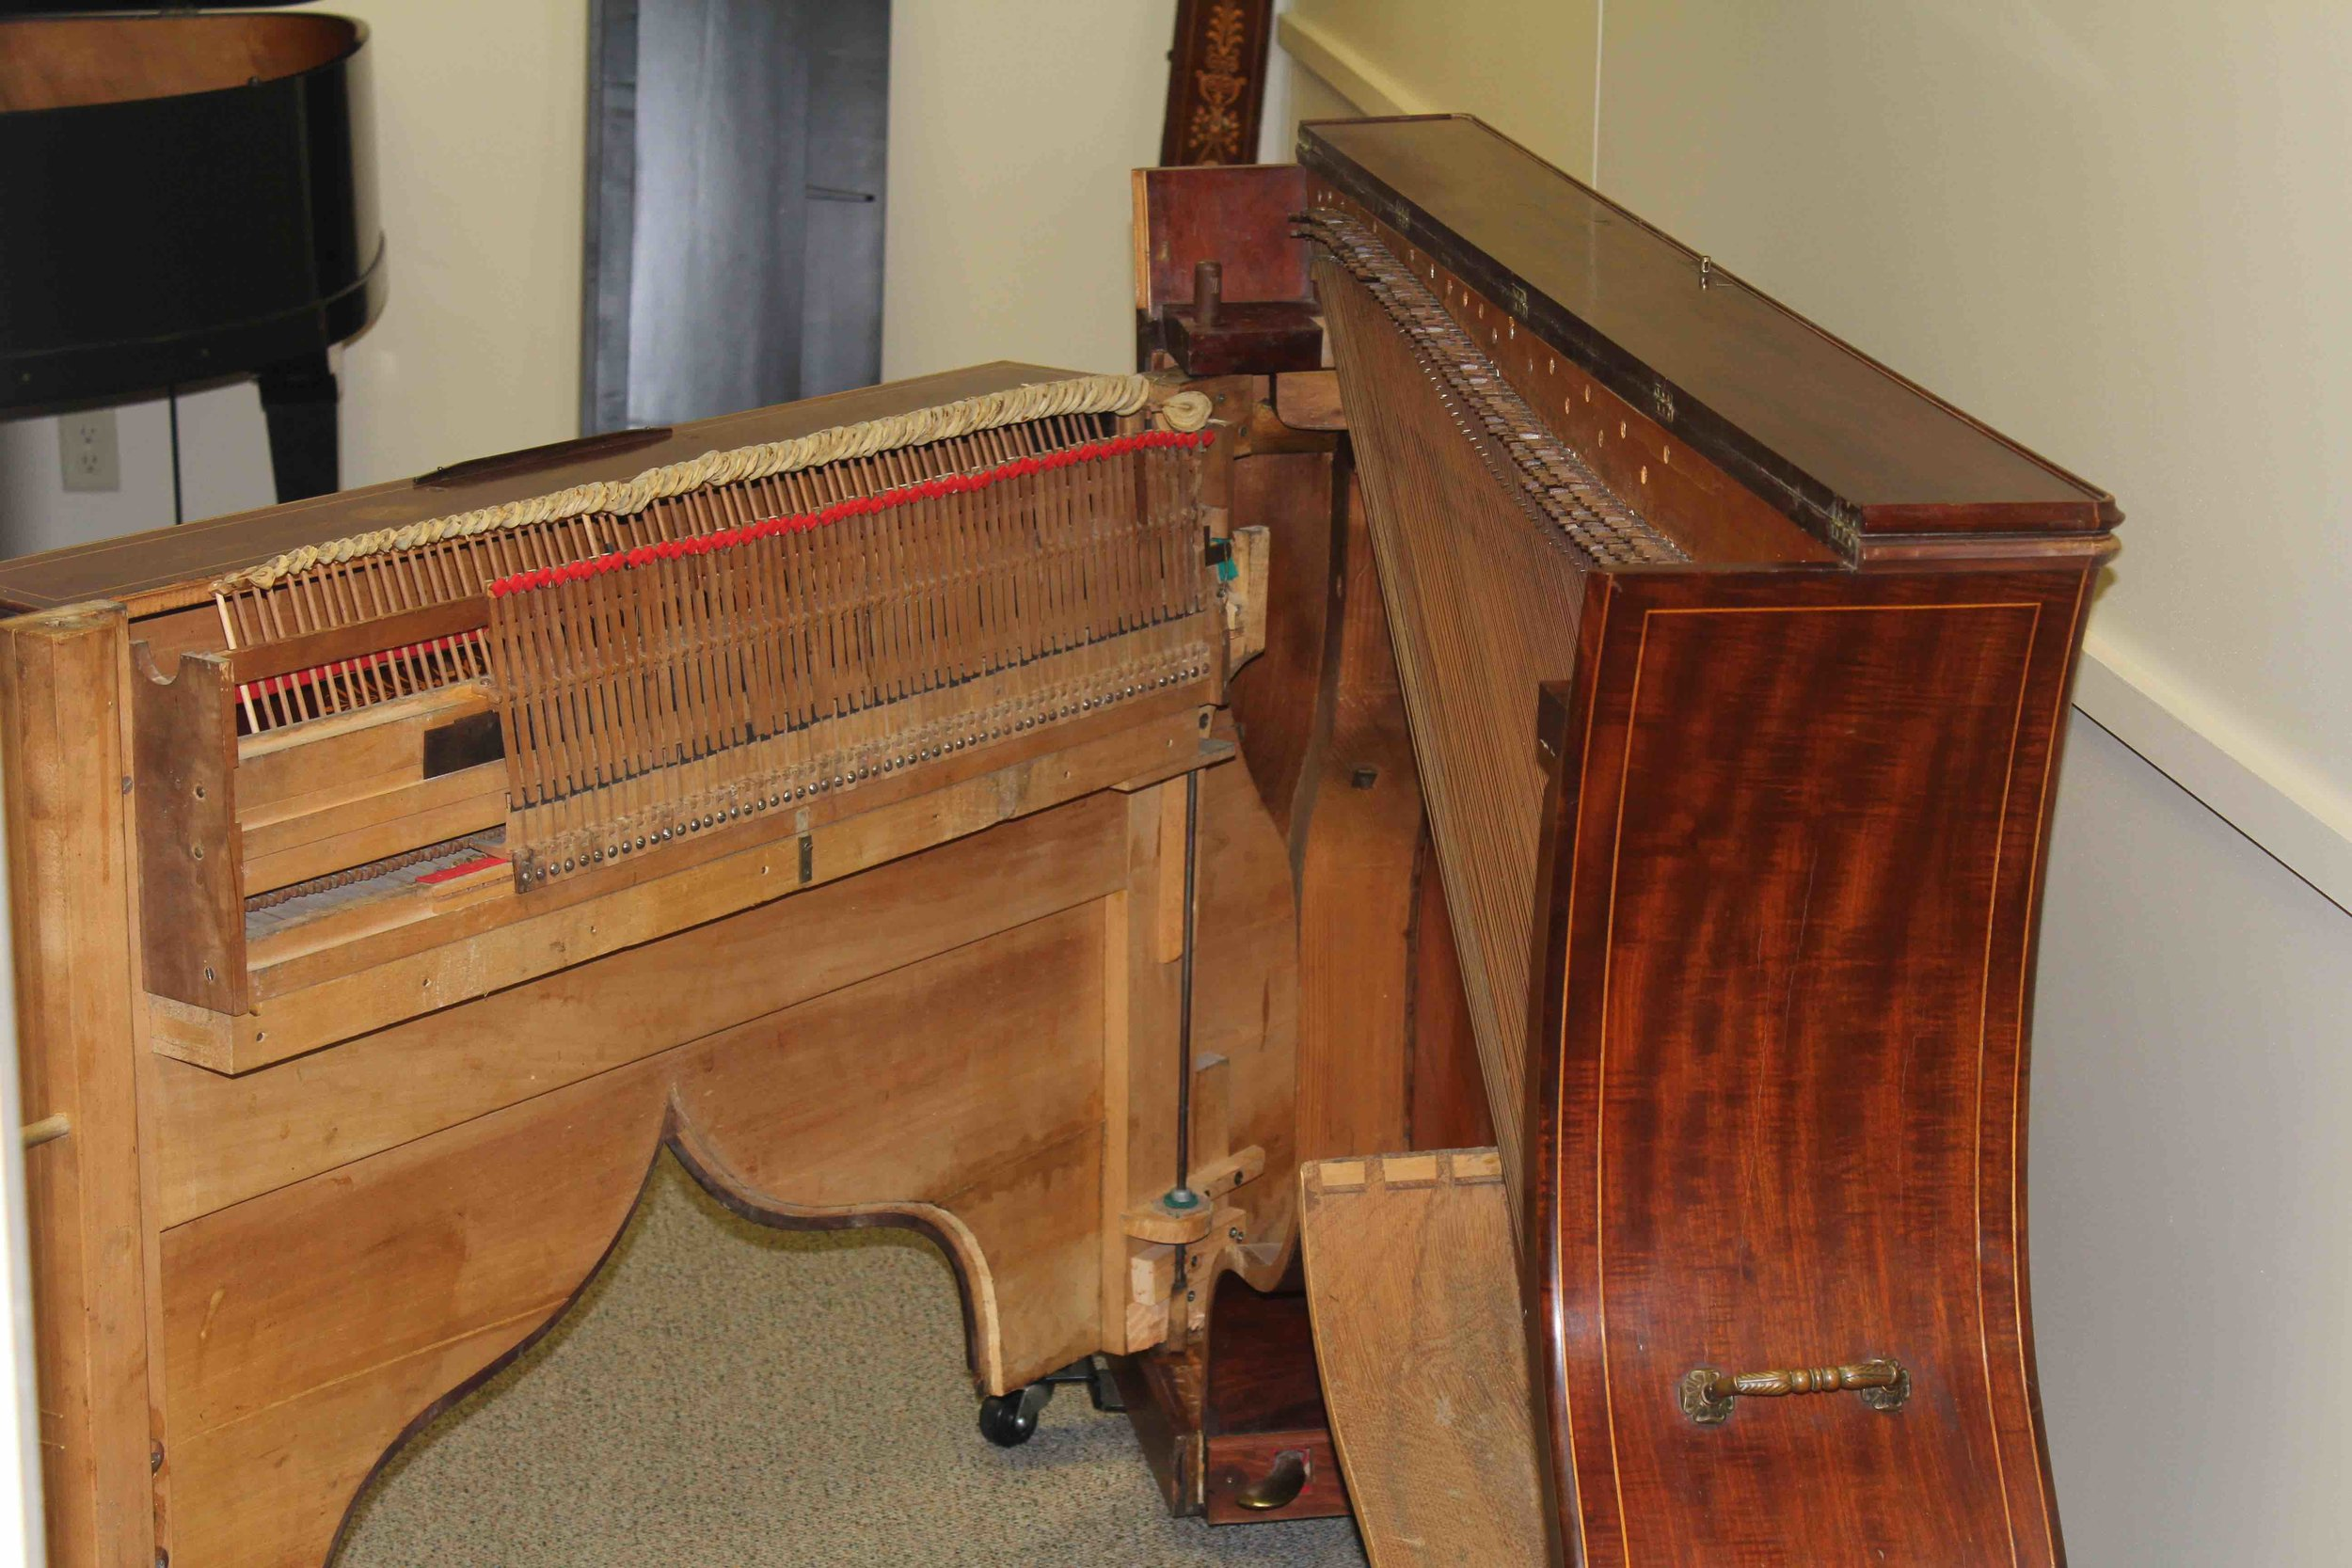 While most of the piano is original, the damper felts (red) have been replaced.